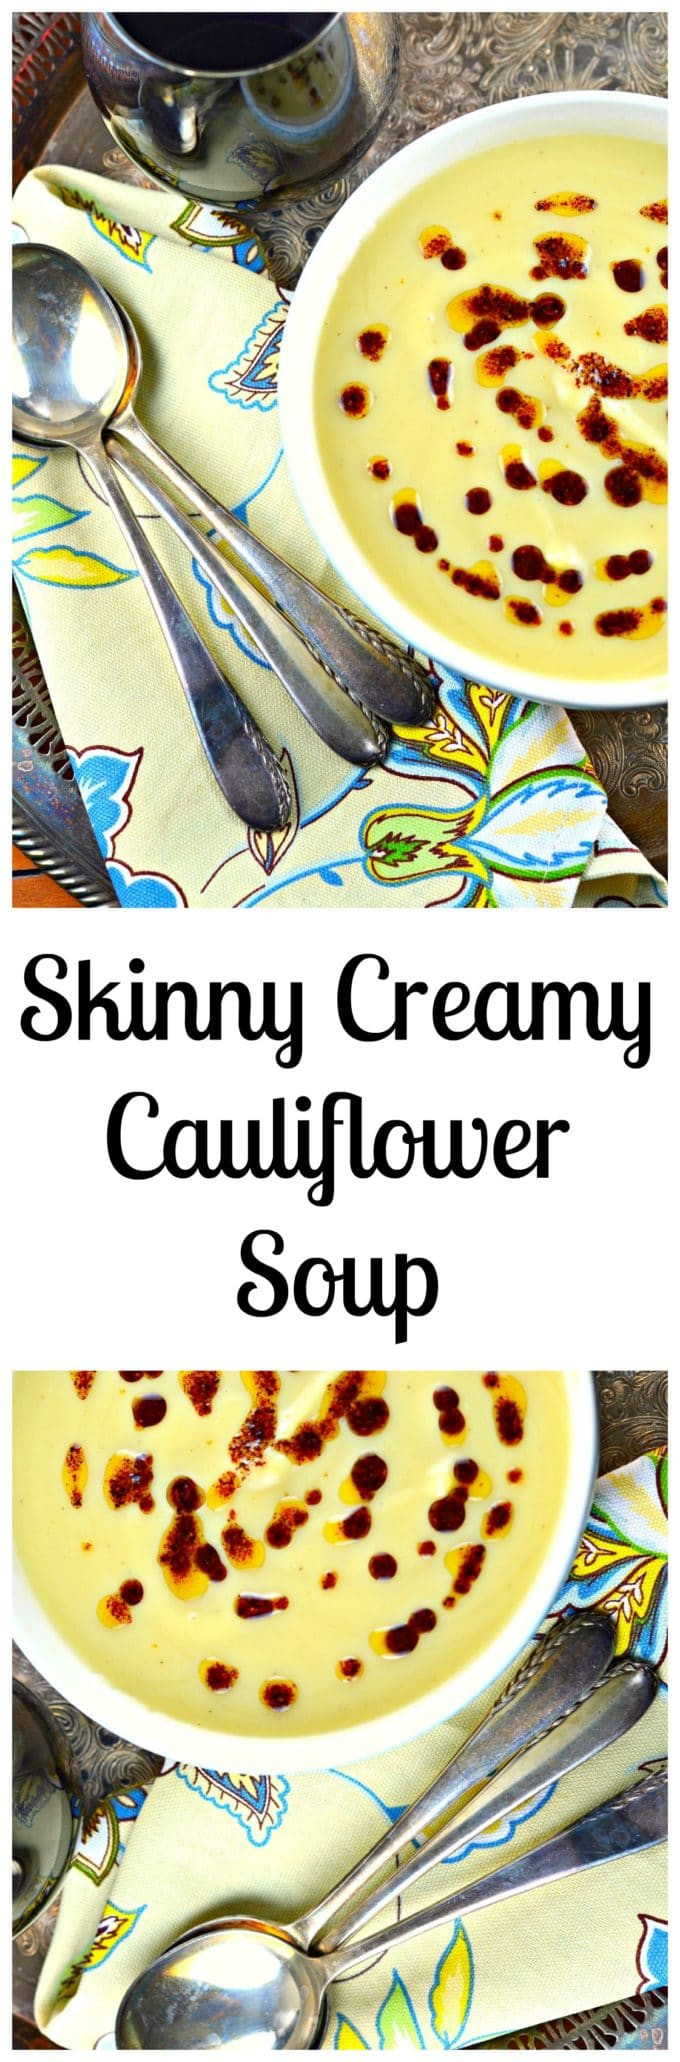 Skinny Creamy Cauliflower soup with lemon sumac oil.  Rich and creamy one cup of this quick and easy cauliflower soup is only 70 calories (without the sumac oil).  Vegan, Paleo, kosher, gluten free and vegetarian.